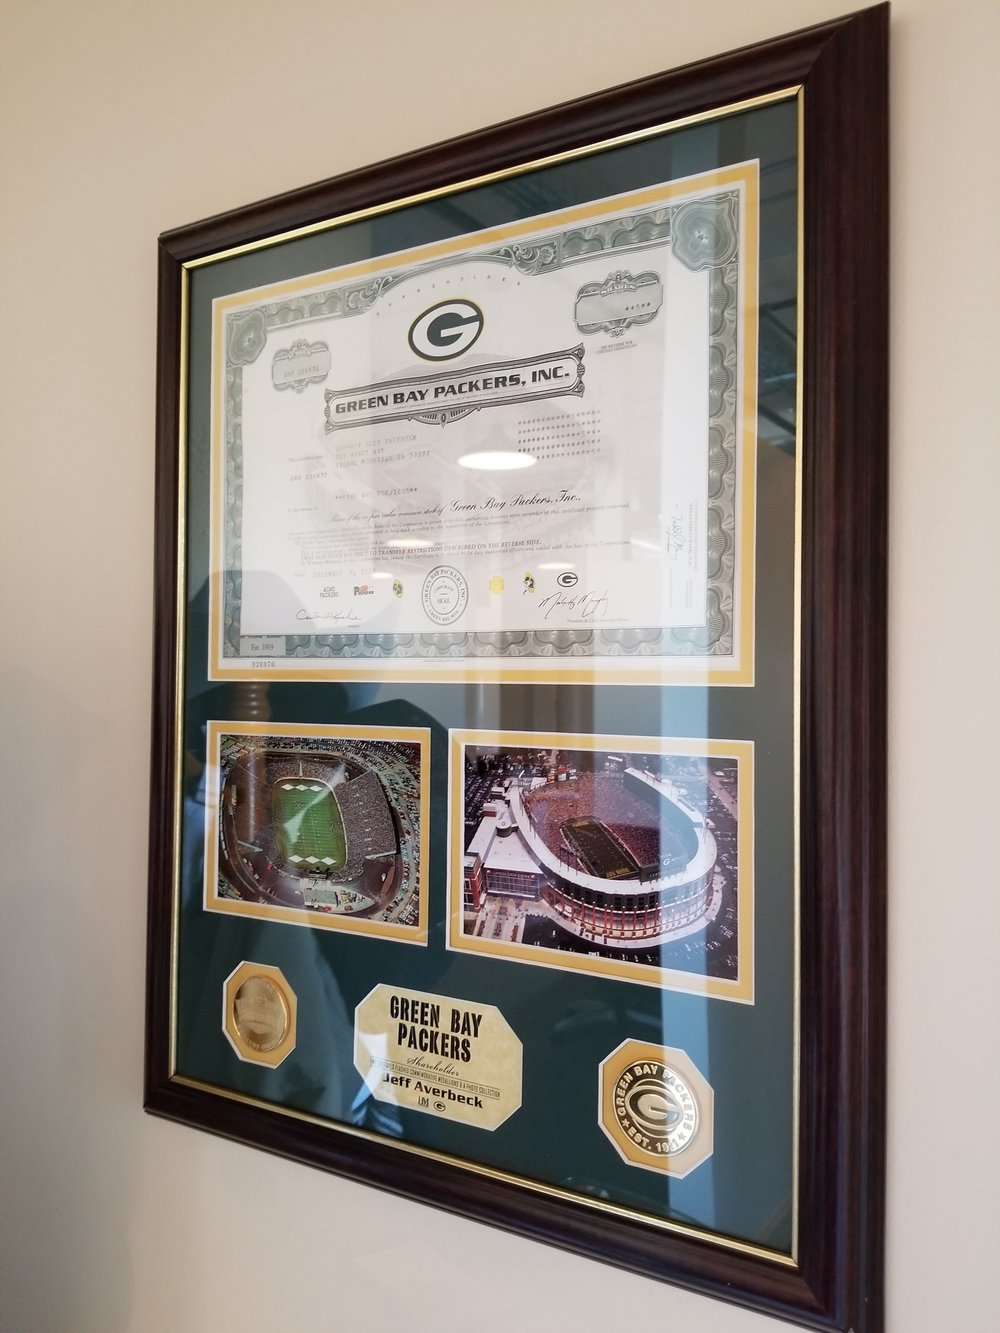 Jeff Averbeck's Green Bay Shareholder plaque!